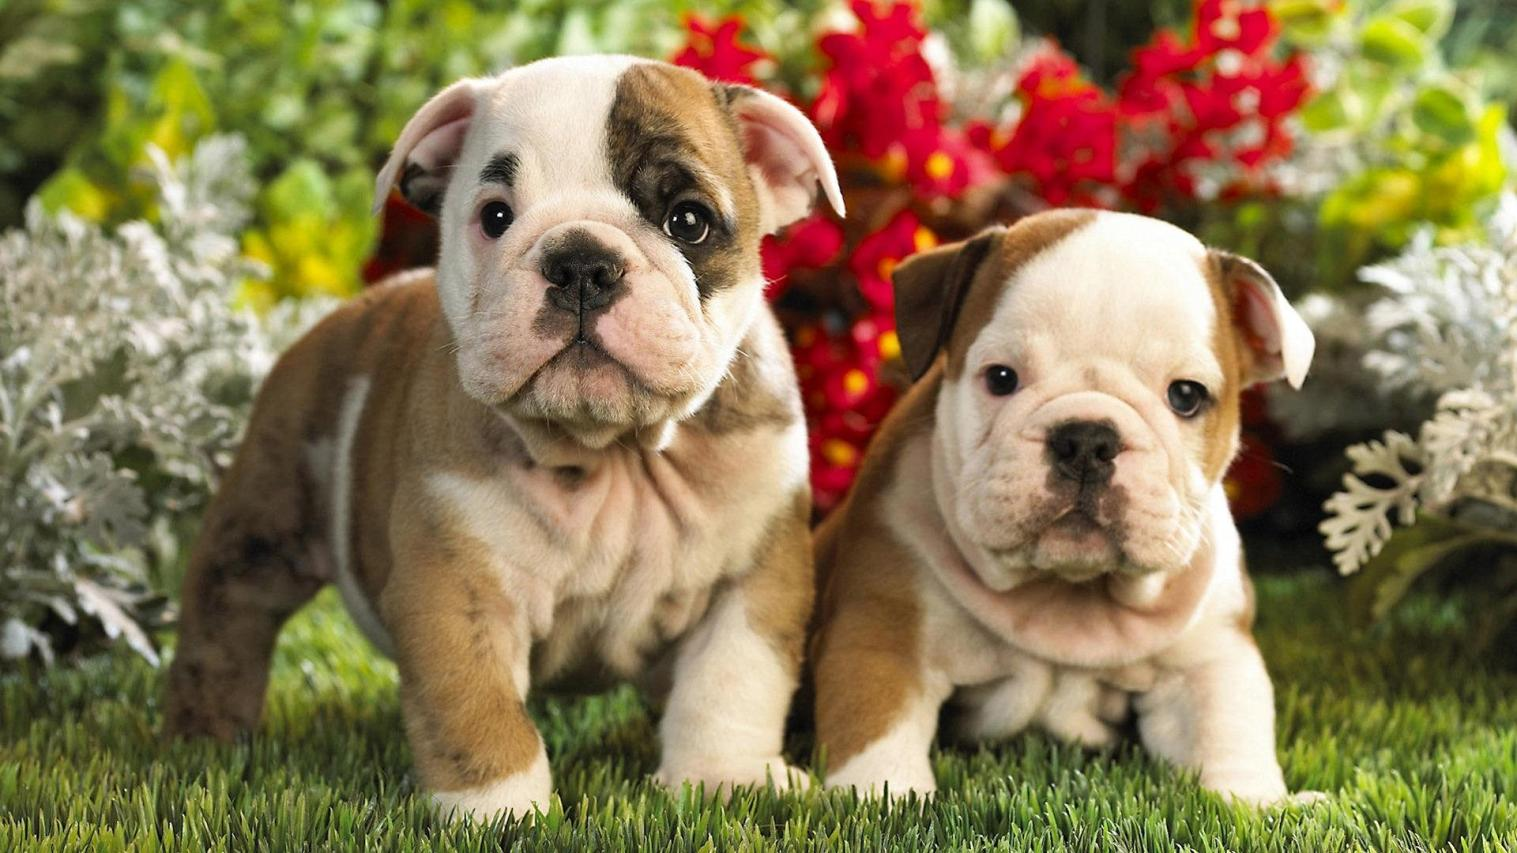 Cute Puppy Wallpaper Dogs 1517x853